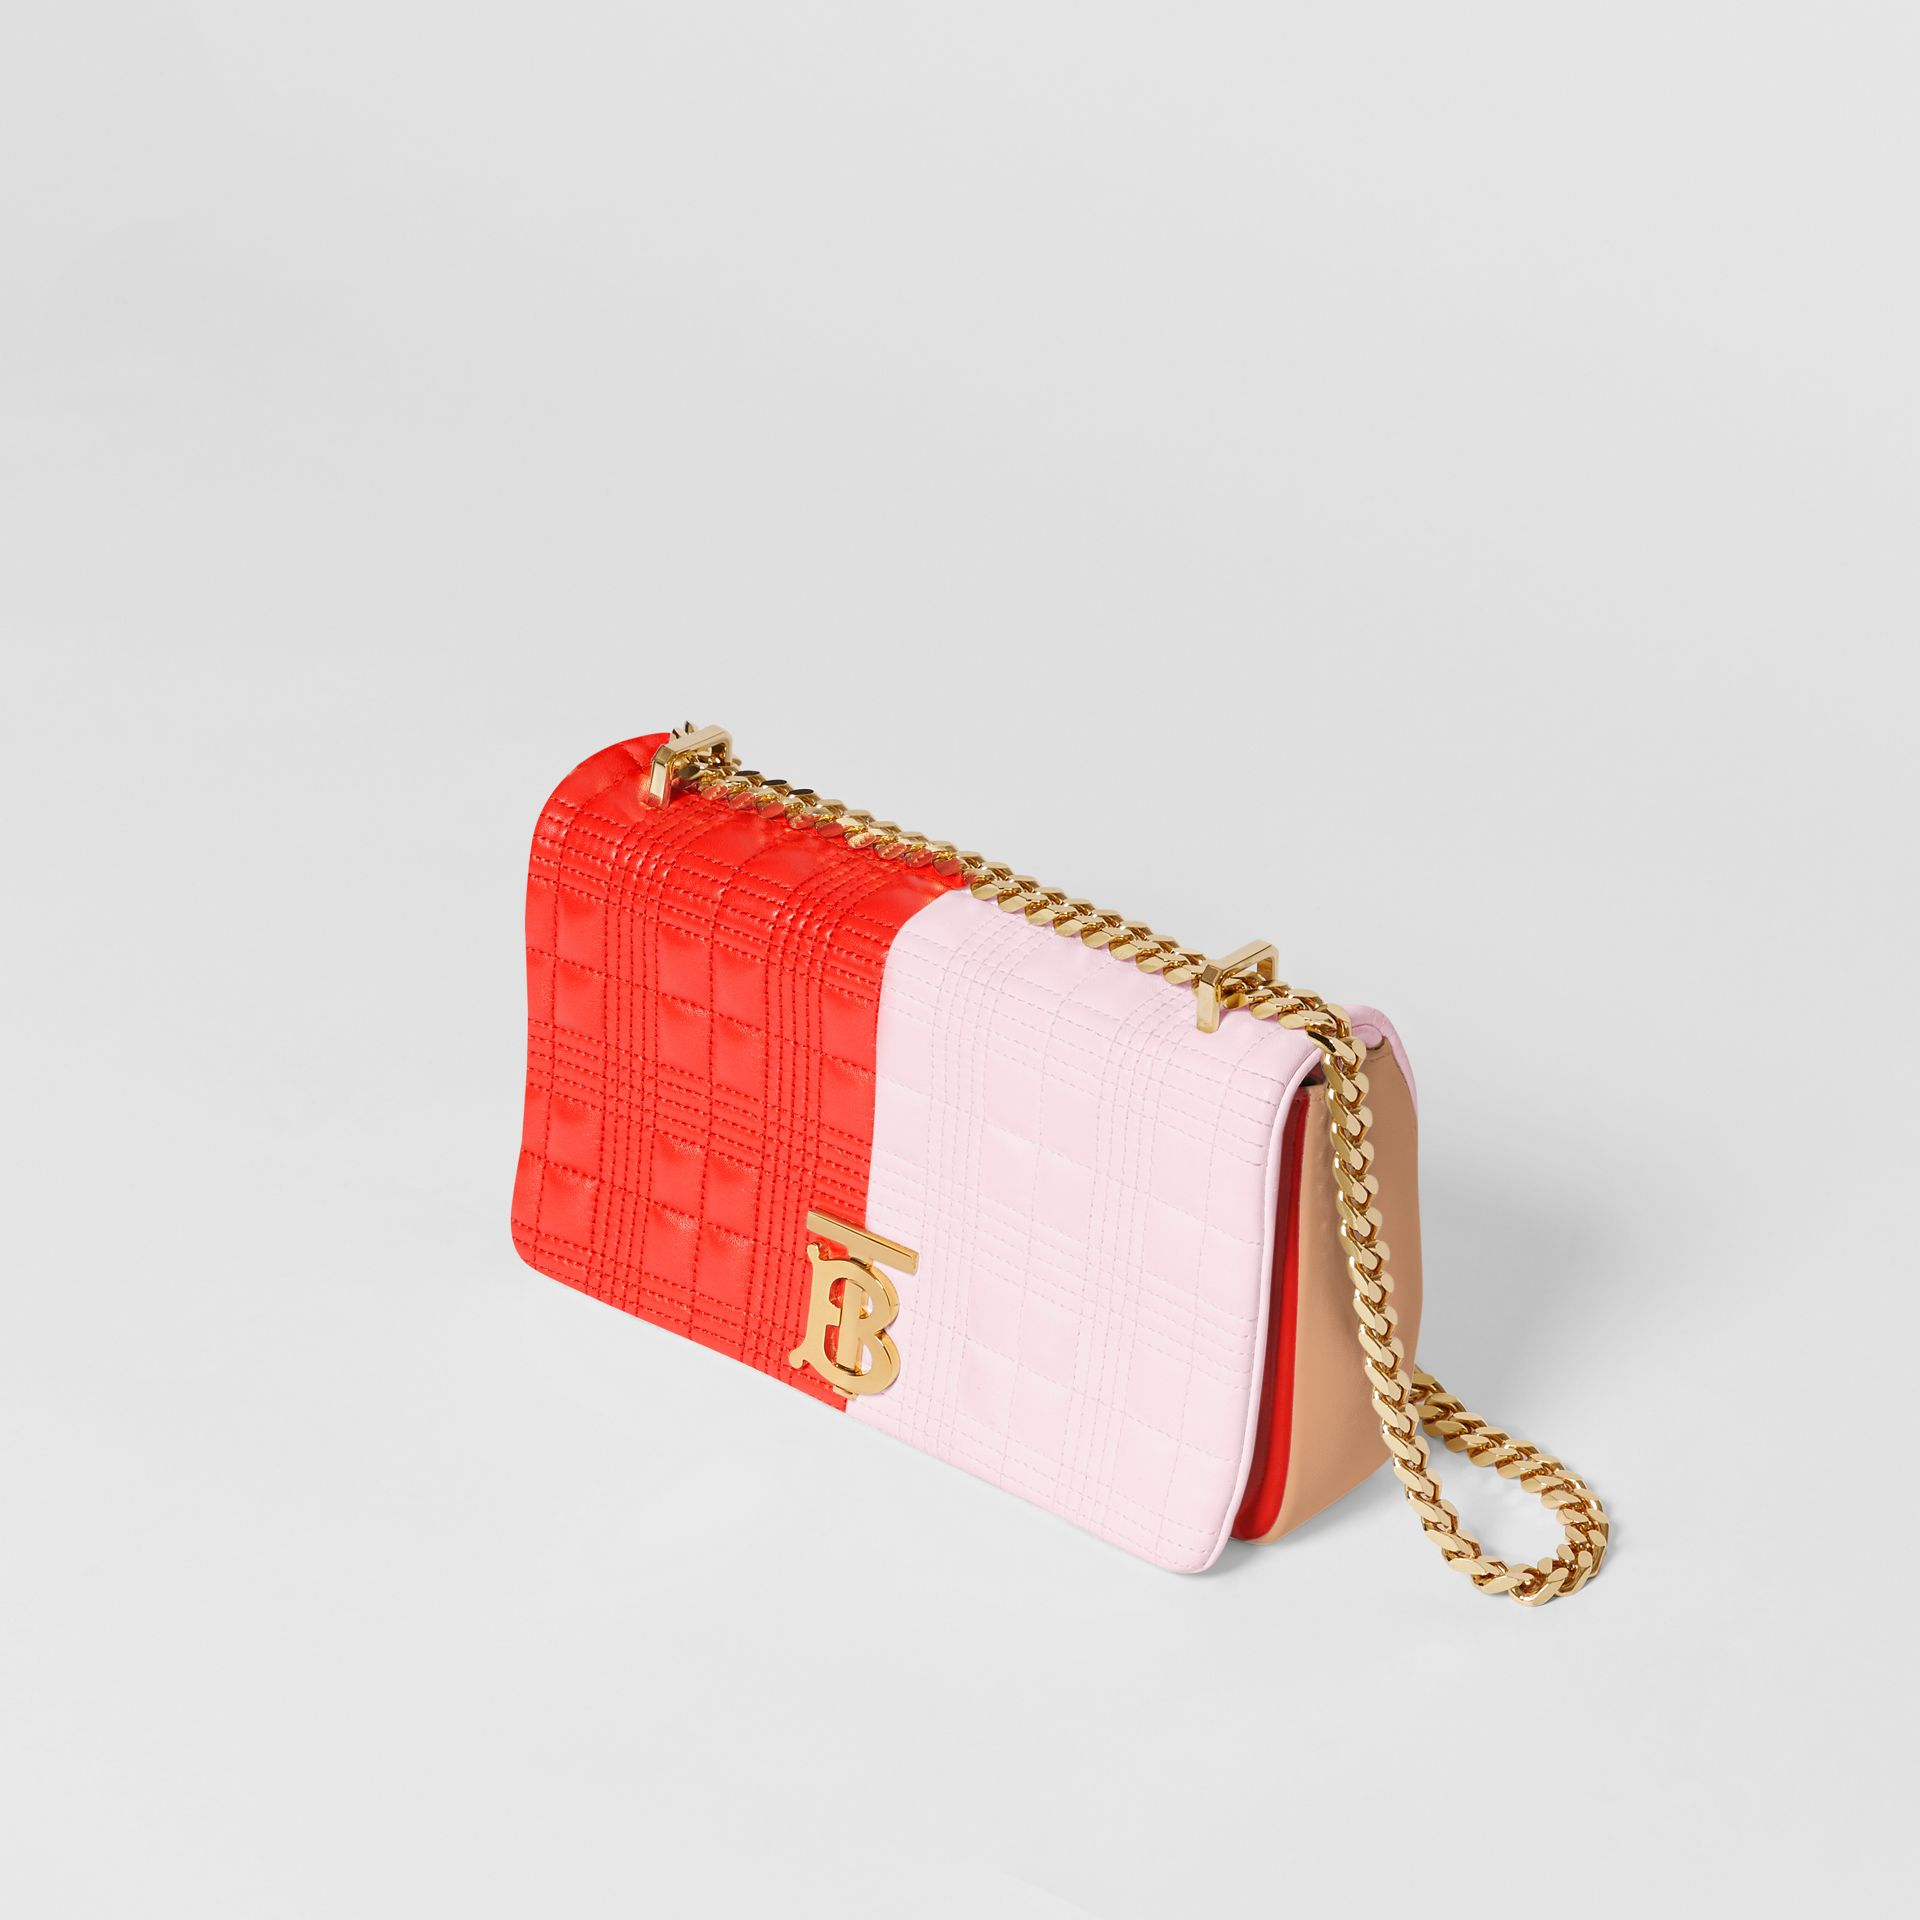 Small Quilted Tri-tone Lambskin Lola Bag in Red/pink/camel - Women | Burberry - gallery image 2